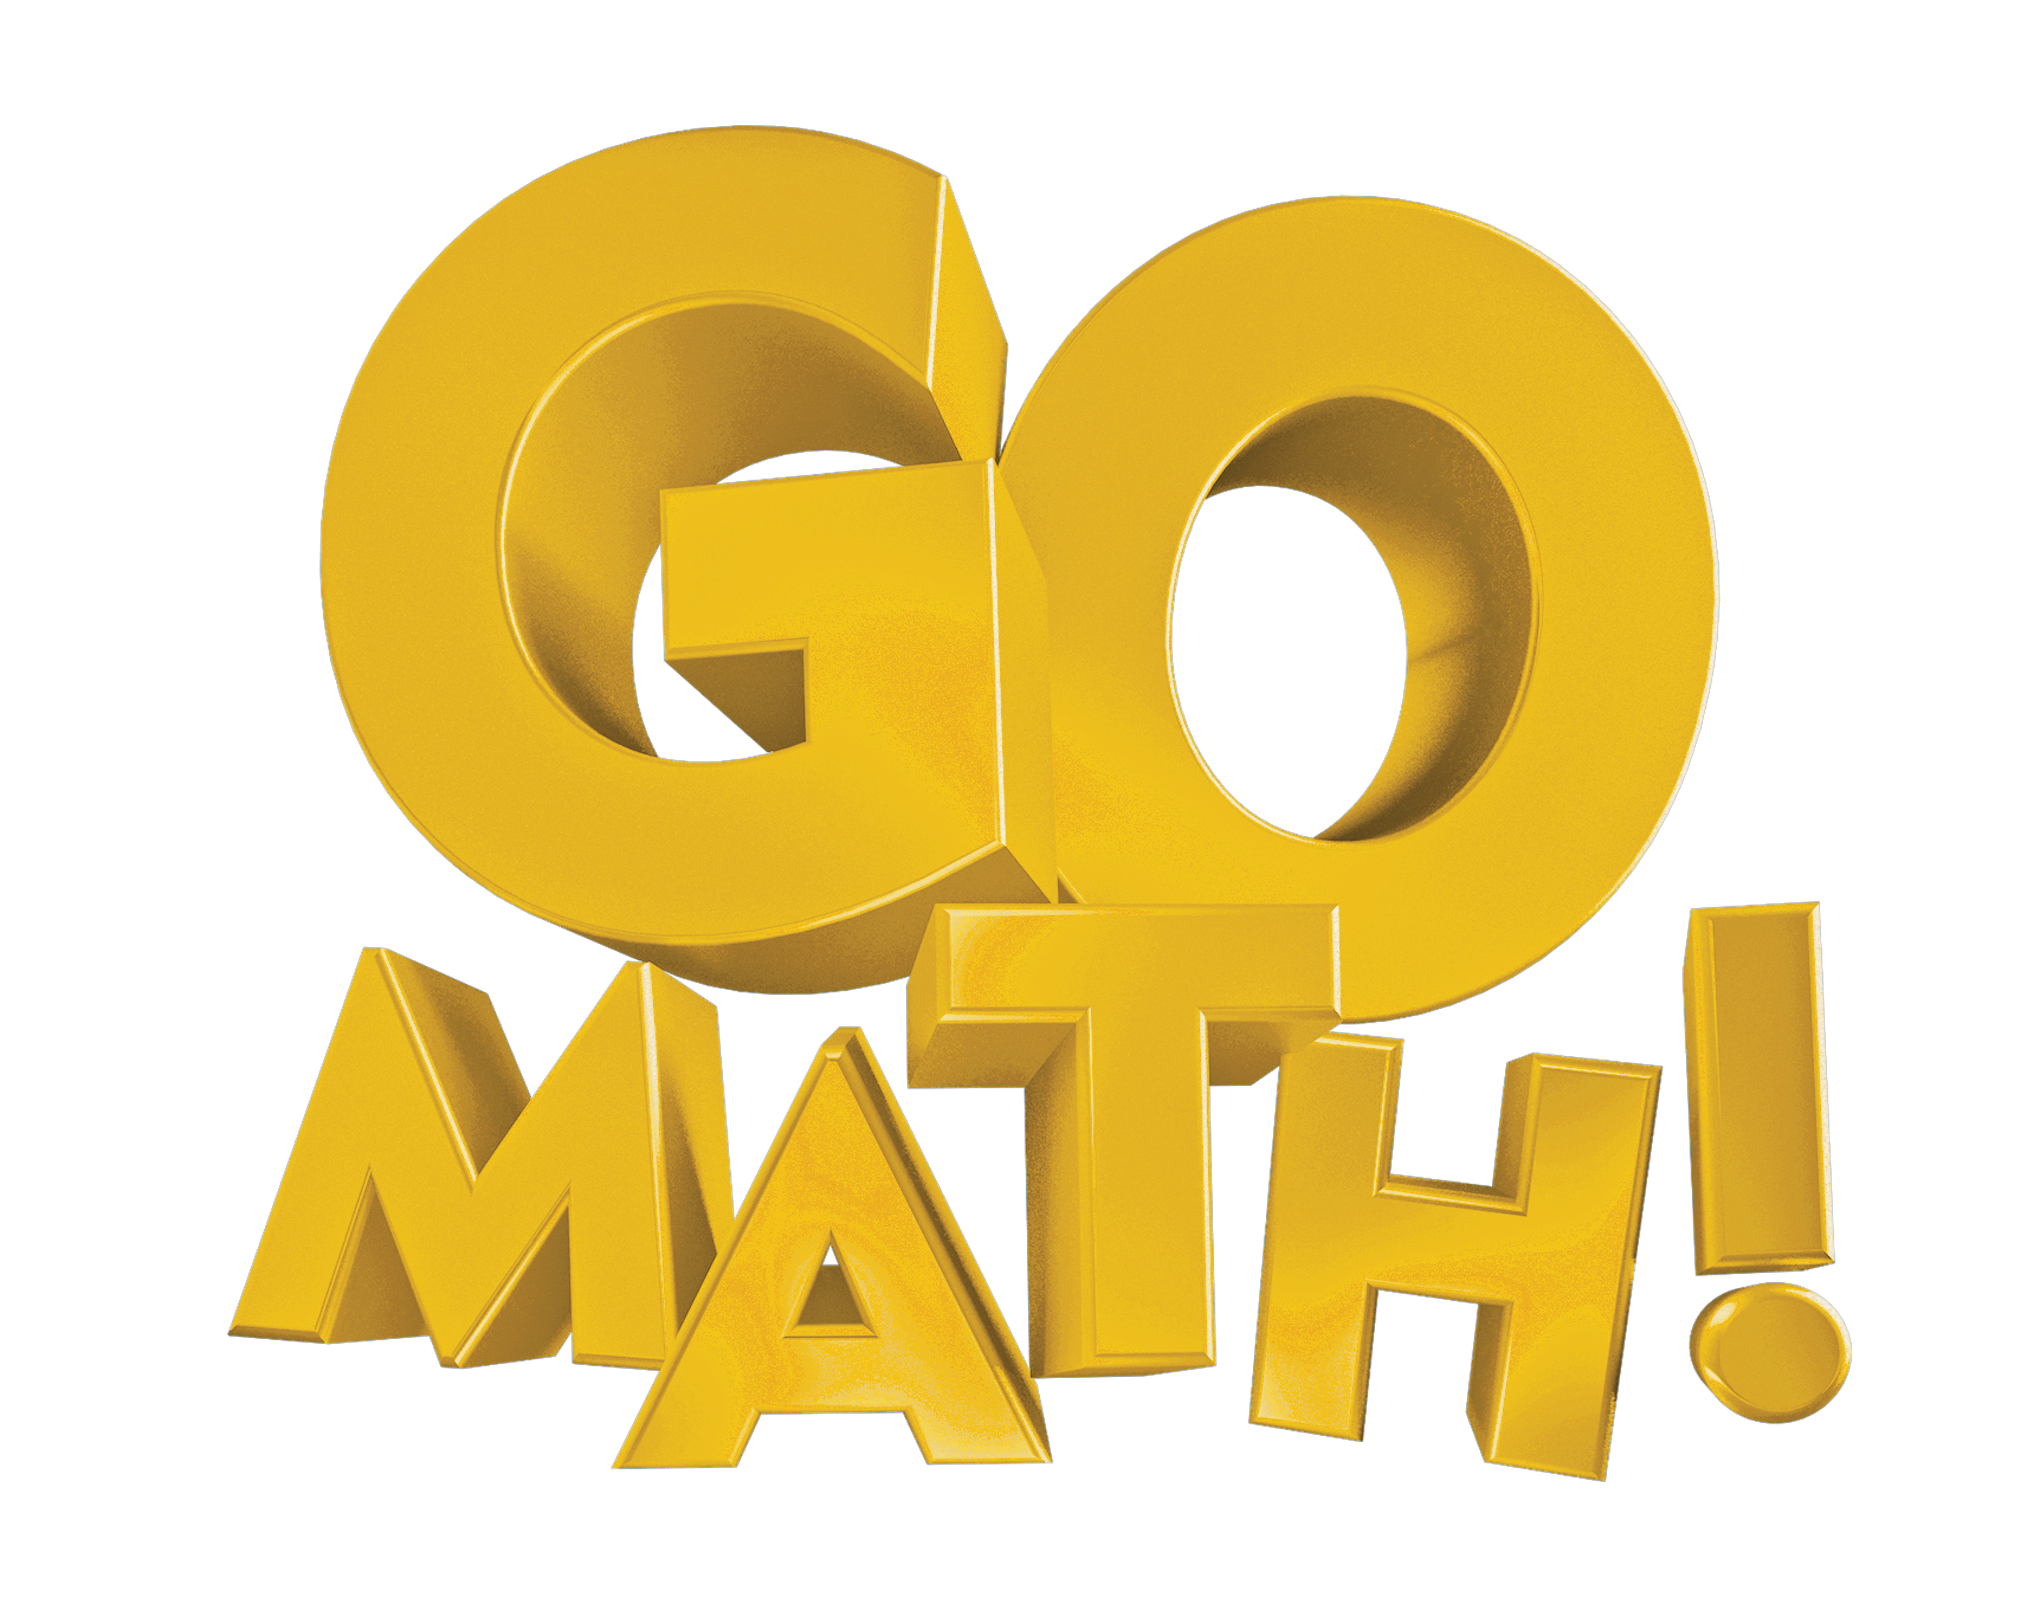 P s q image. Psychology clipart math practice